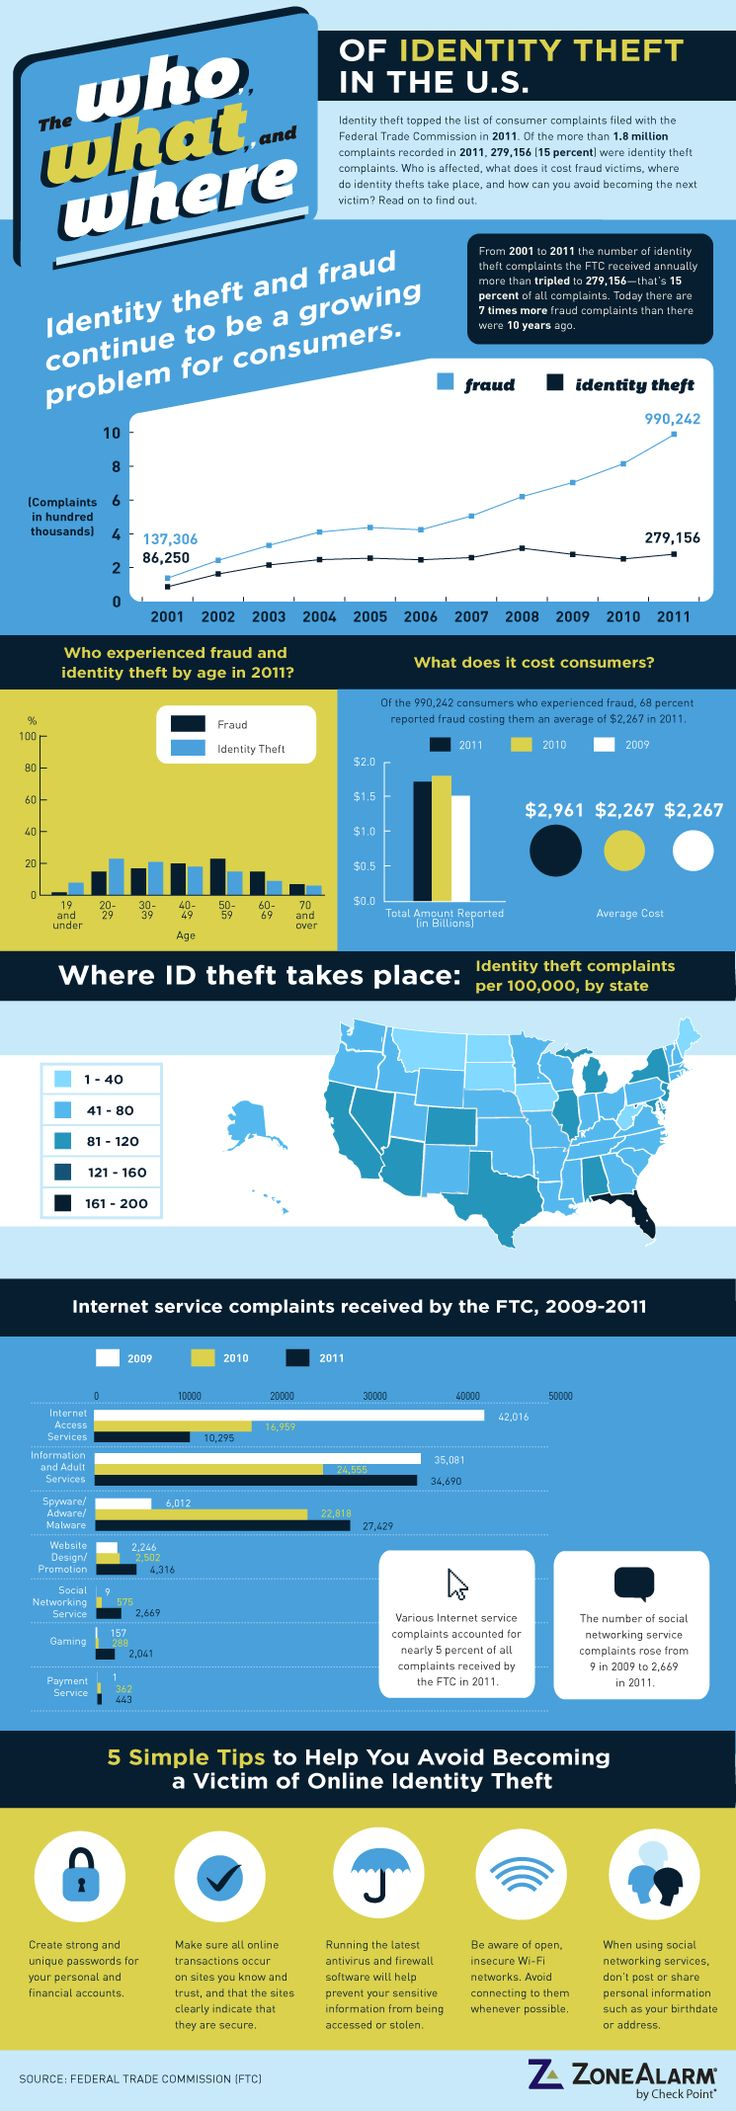 best ideas about identity theft statistics the who what and where of identity theft in the us via techrepublic com